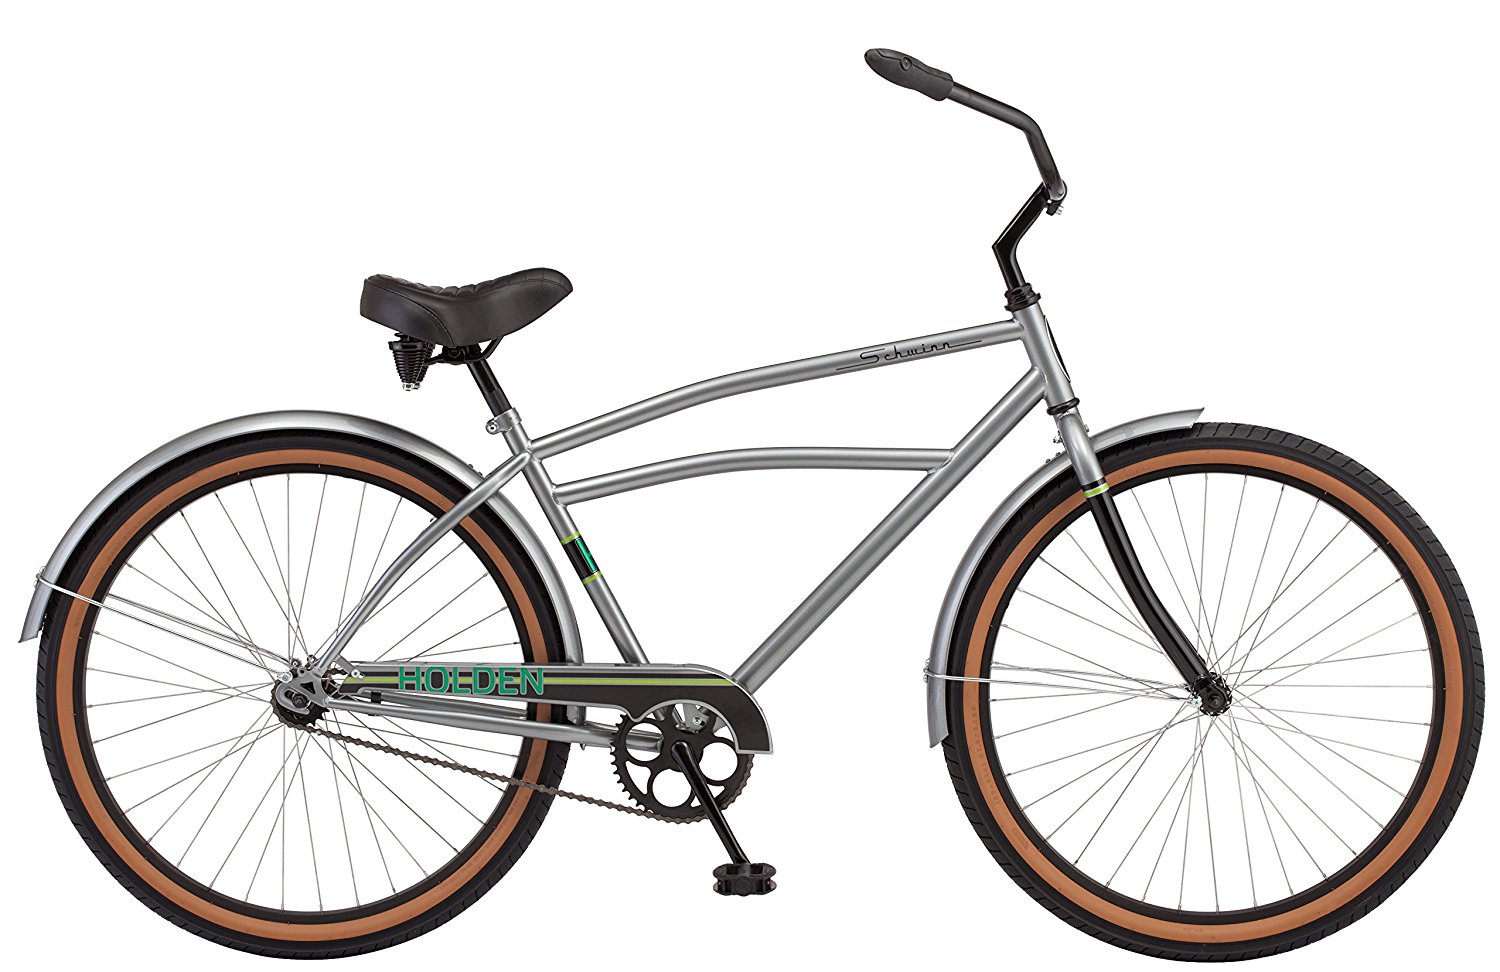 536e5a54f9d Get Quotations · Schwinn Men's Holden Cruiser 27.5